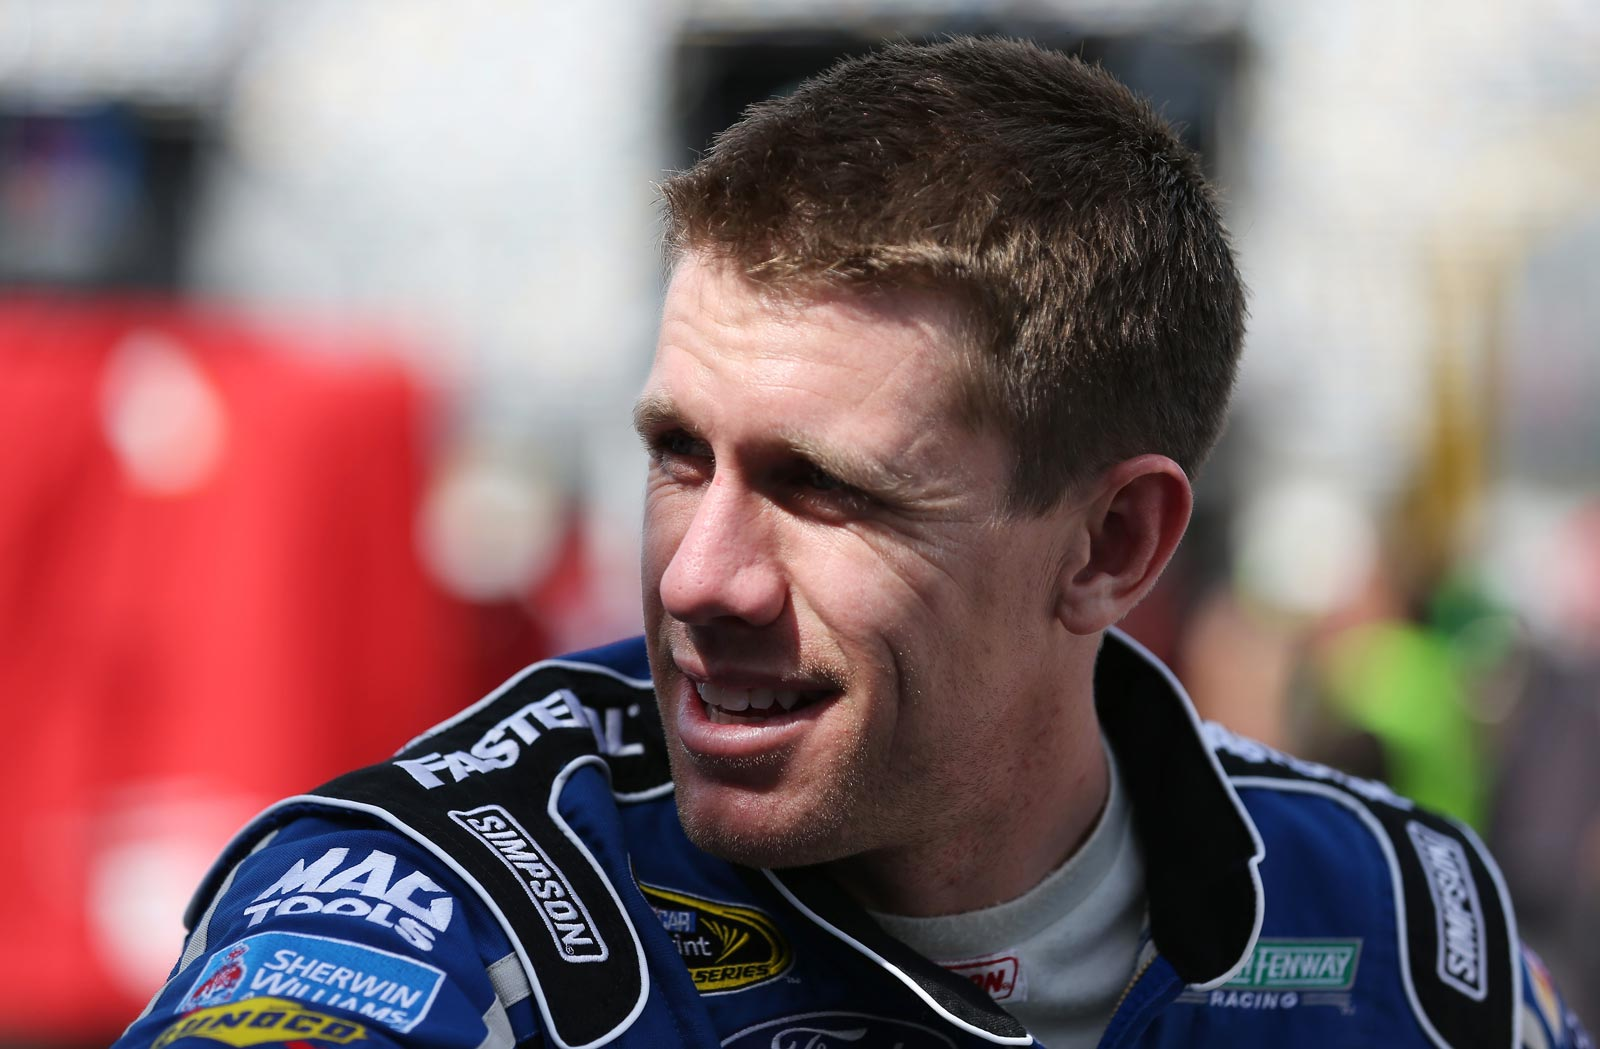 Daytona-Friday-Carl-Edwards-In-Garage